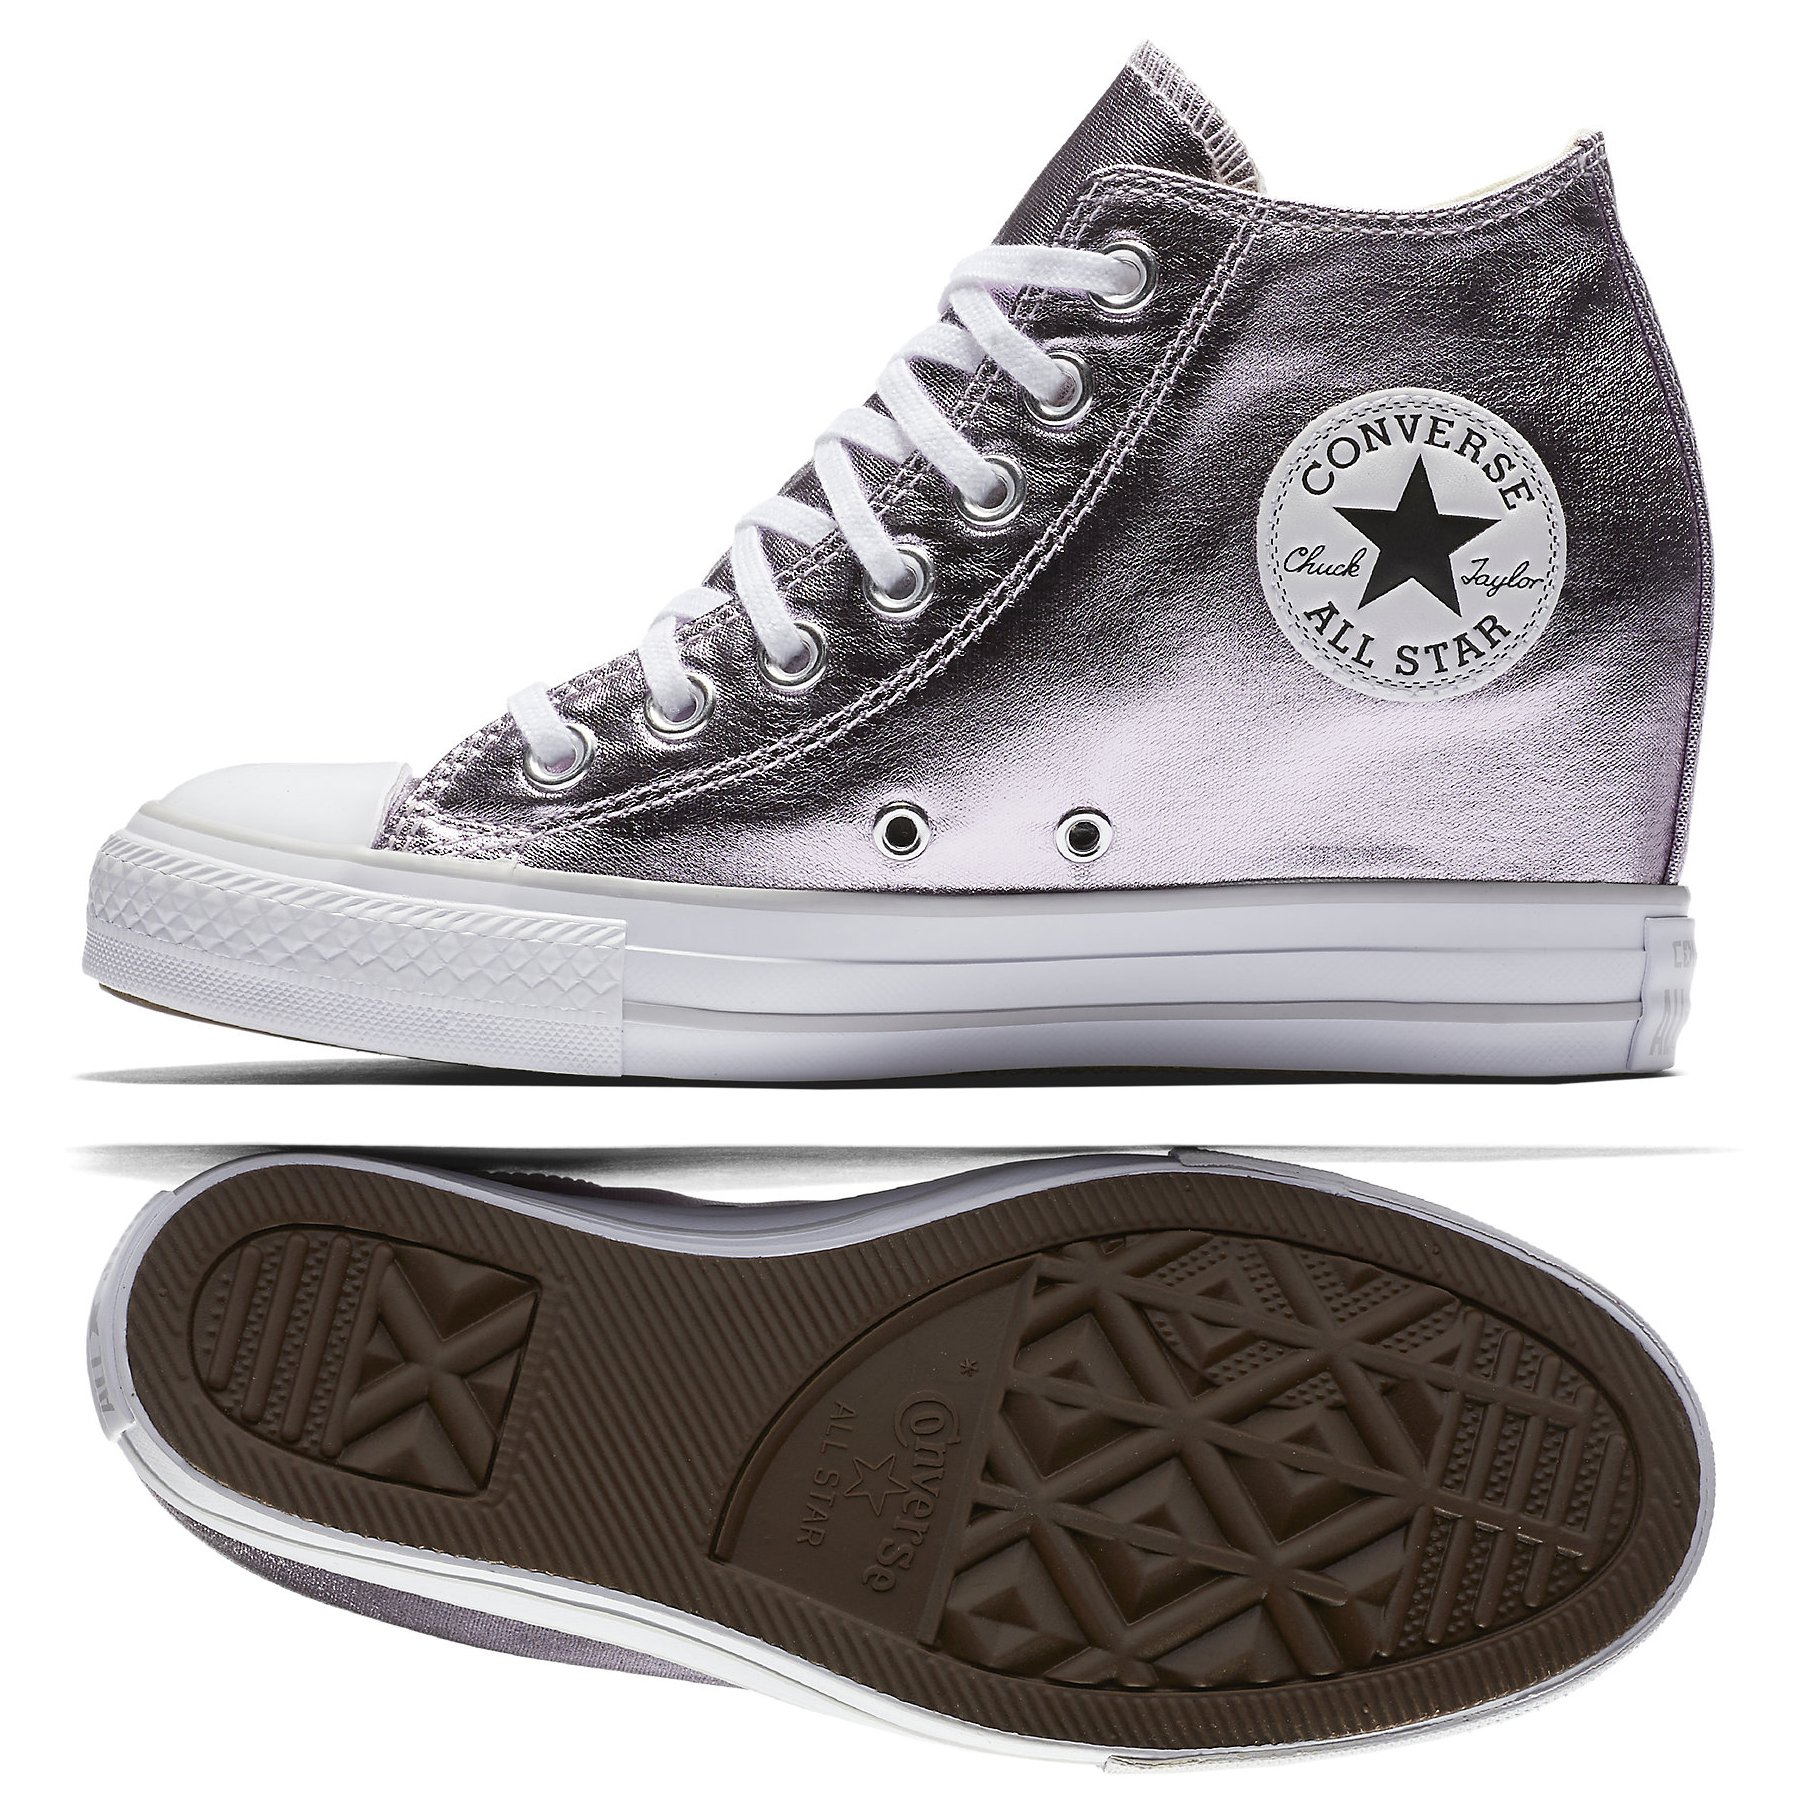 0288144cc830 Galleon - Converse Womens Chuck Taylor Lux Wedge Sneaker Metallic (6.5 B  US)